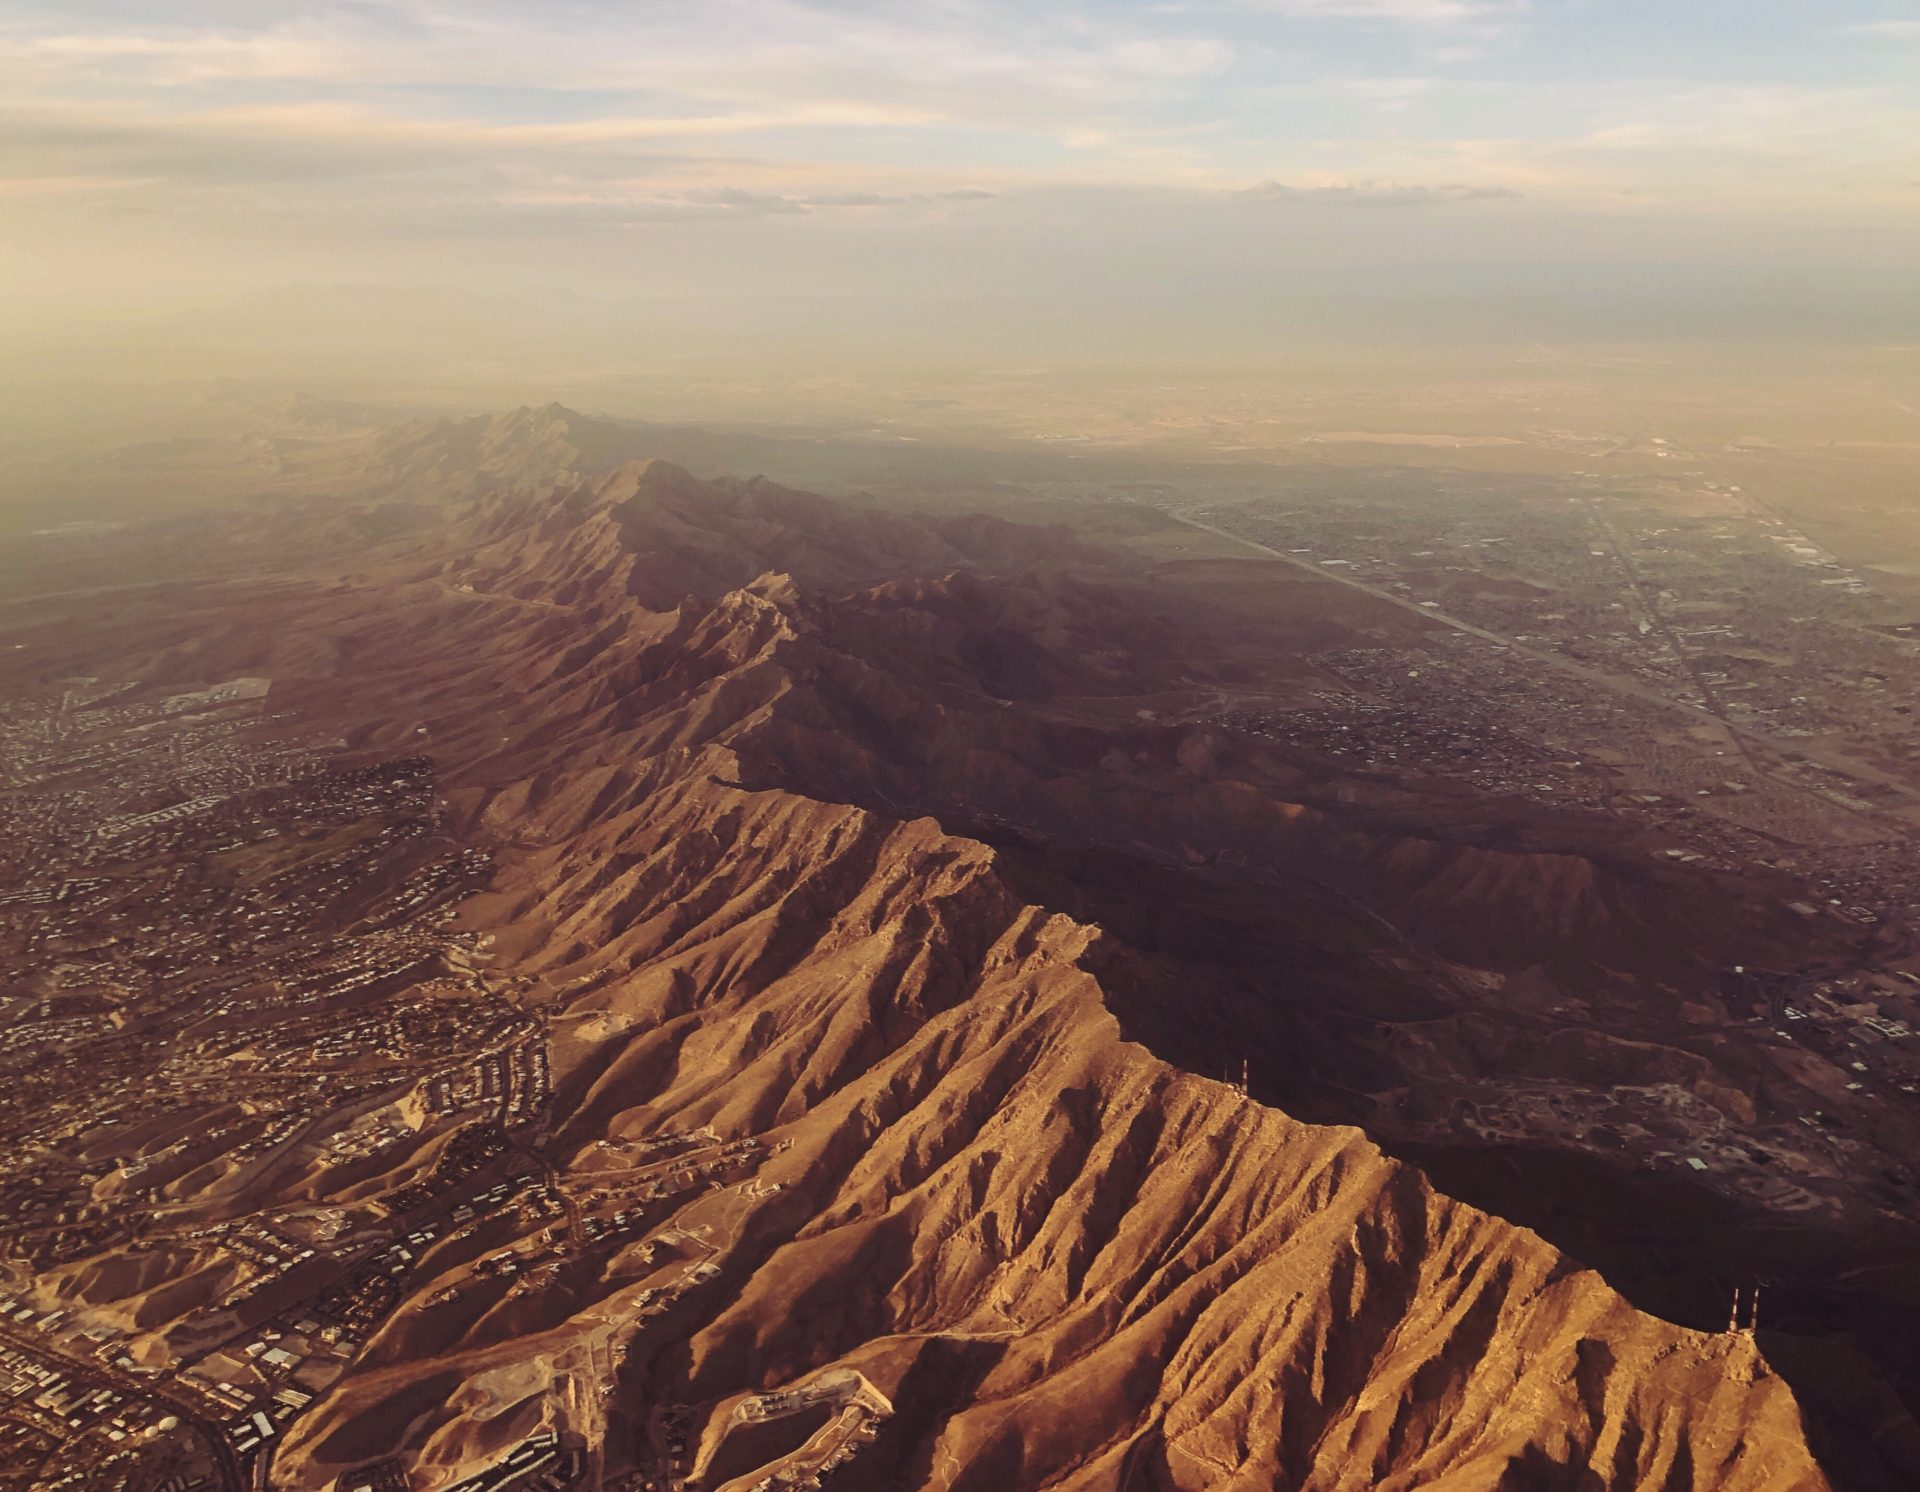 Aerial view of El Paso Texas and desert